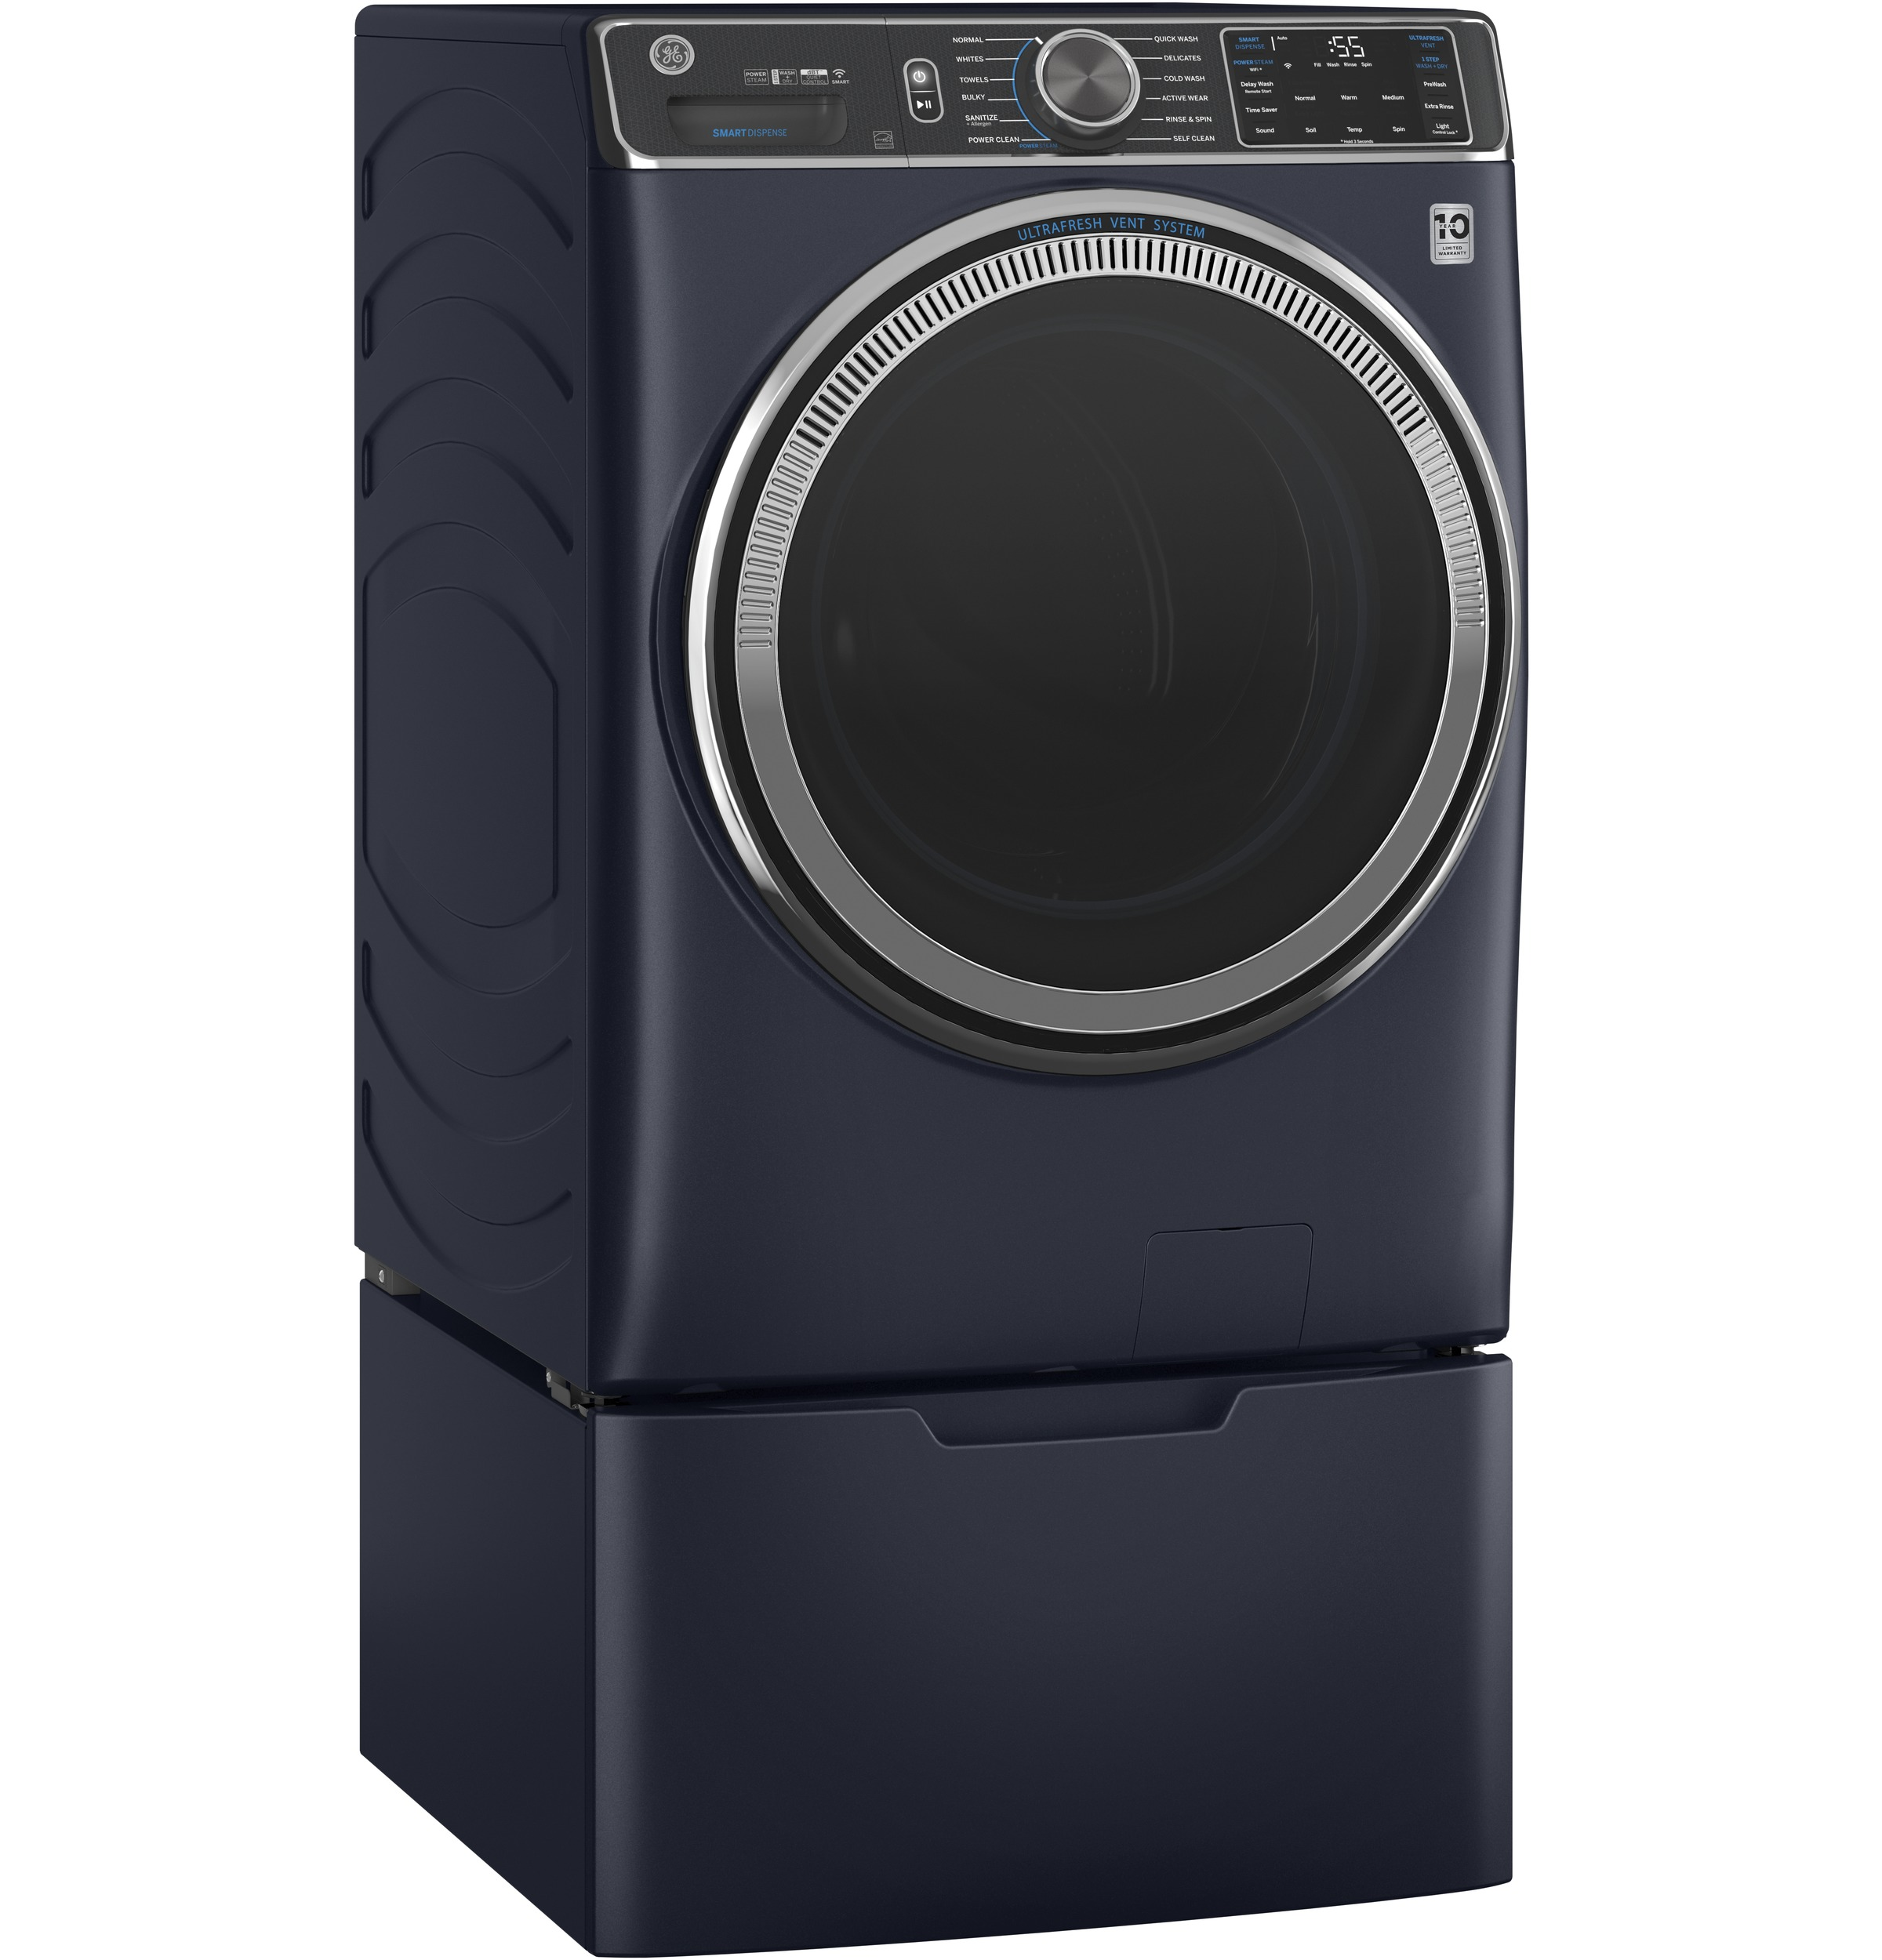 Model: GFW850SPNRS   GE GE® 5.0 cu. ft. Capacity Smart Front Load ENERGY STAR® Steam Washer with SmartDispense™ UltraFresh Vent System with OdorBlock™ and Sanitize + Allergen